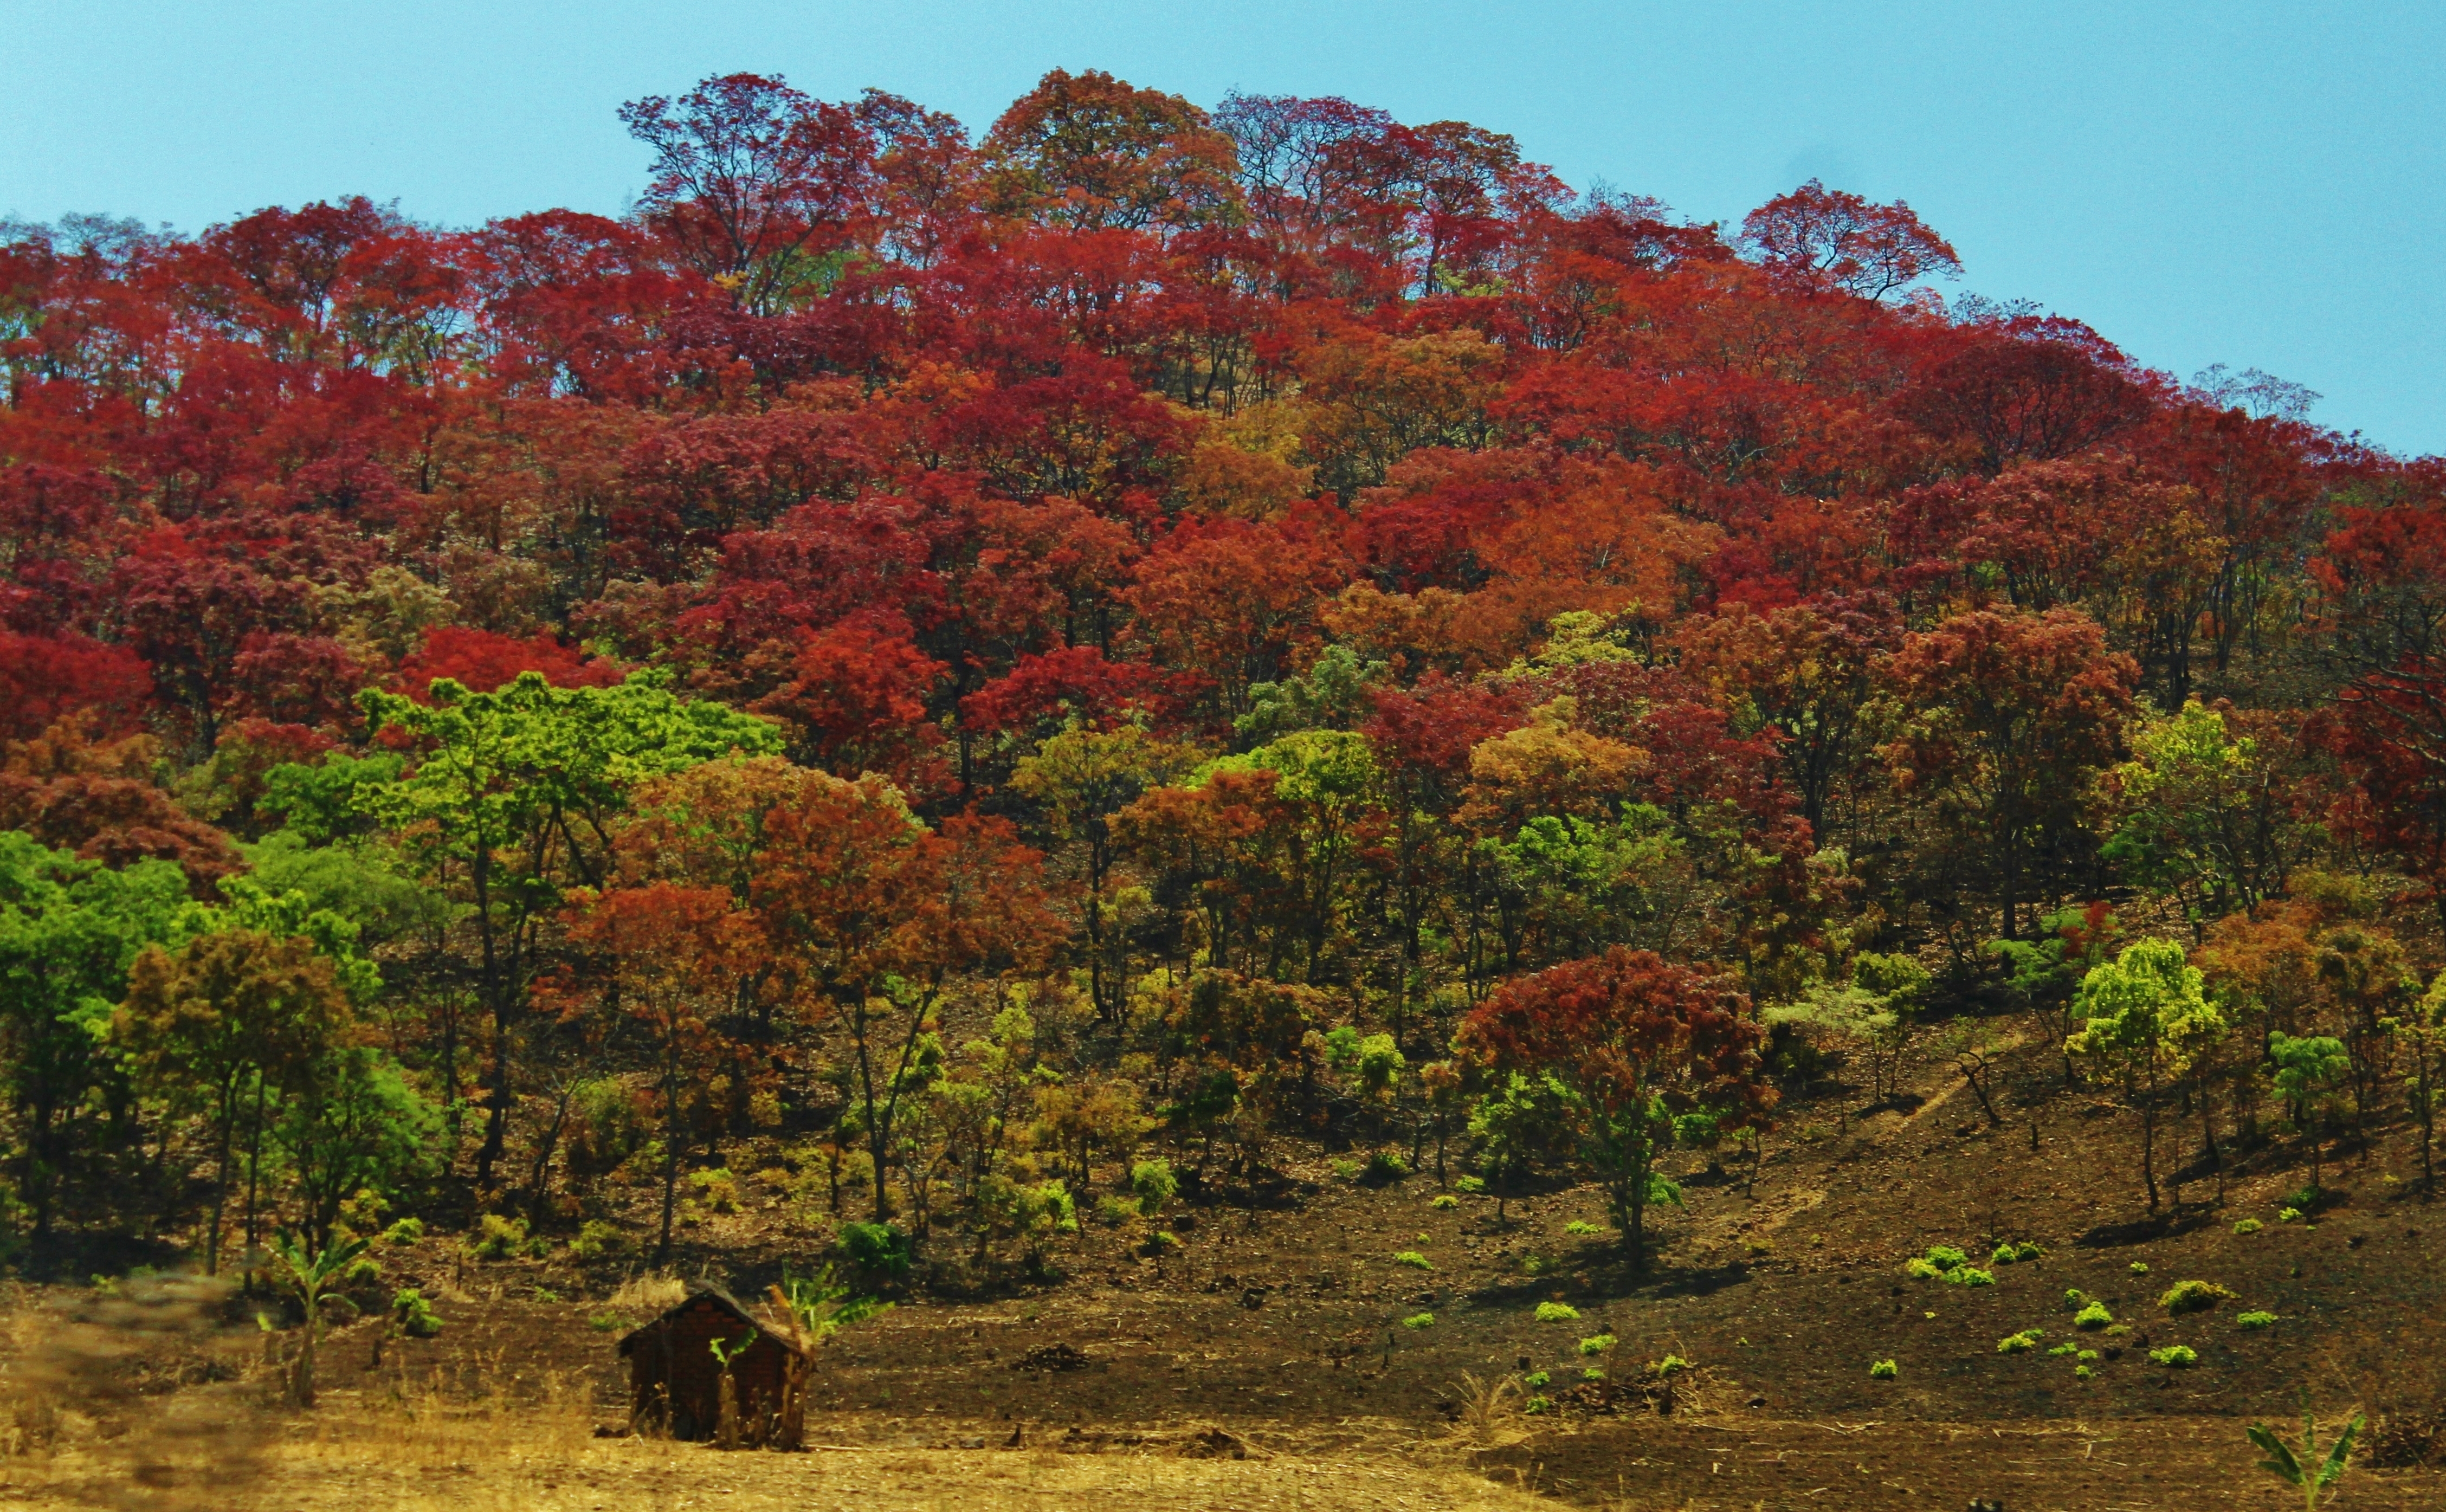 Fall in southern Tanzania: the leaves turn red at the end of rainy season, according to my driver